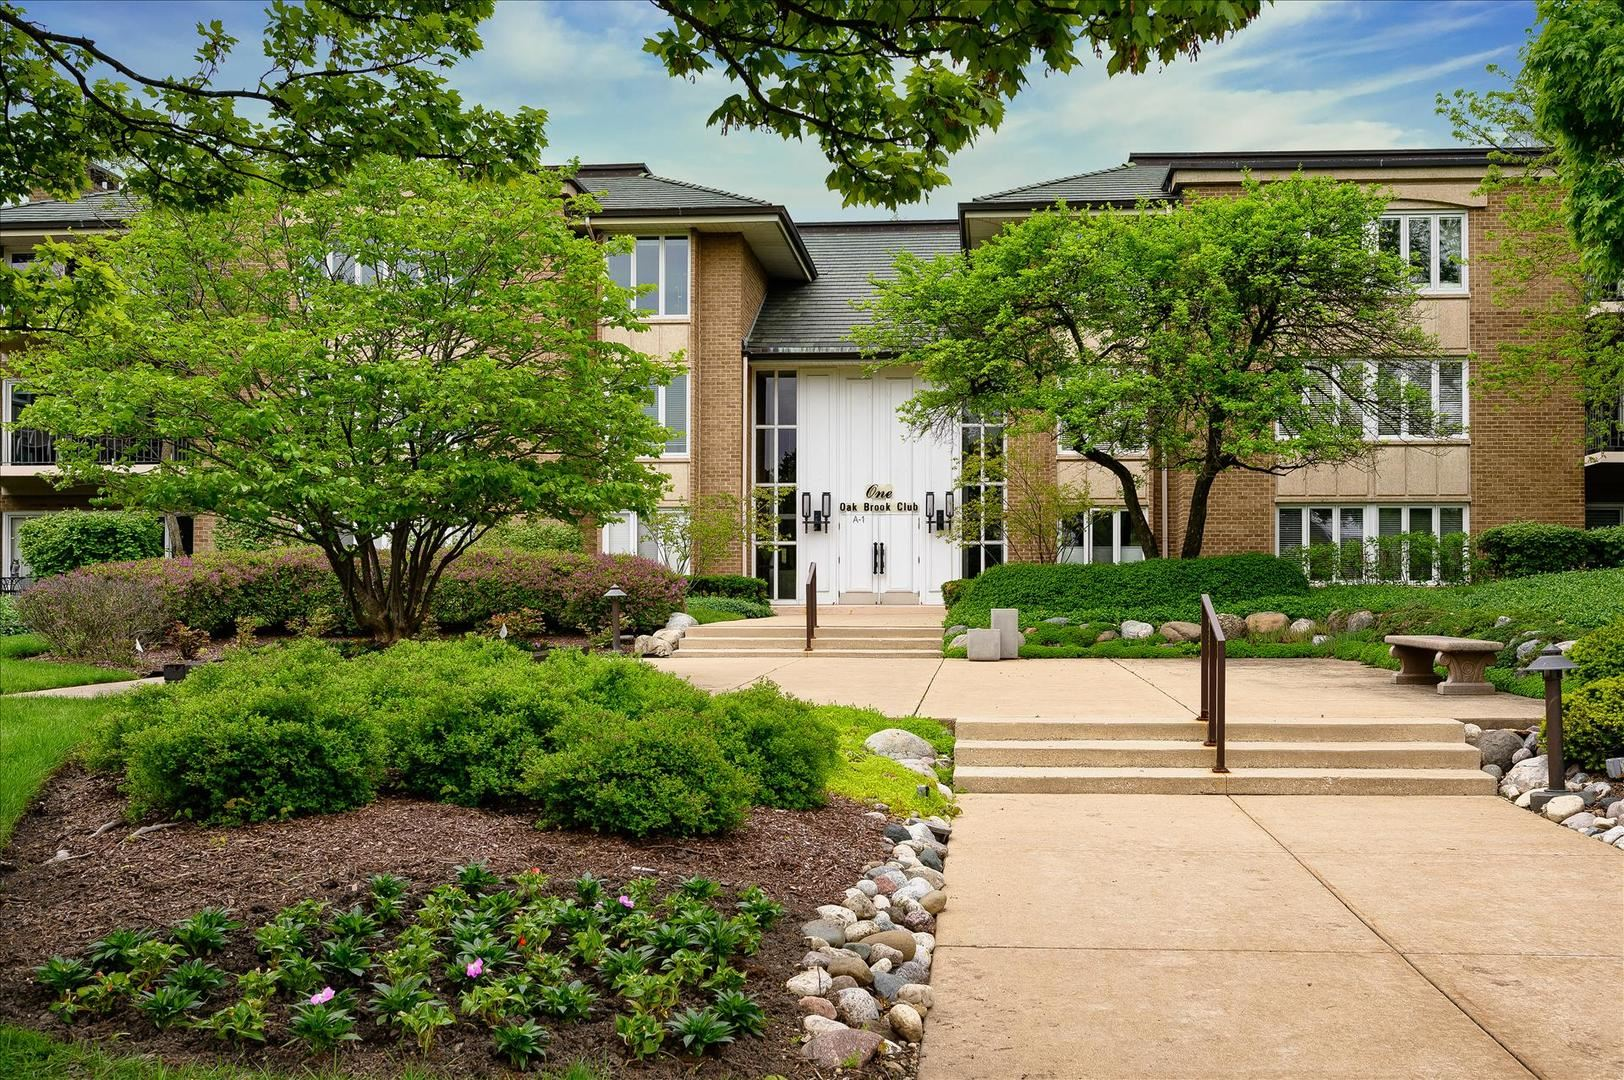 1 Oak Brook Club Drive #A309, Oak Brook, IL 60523 - #: 10725363